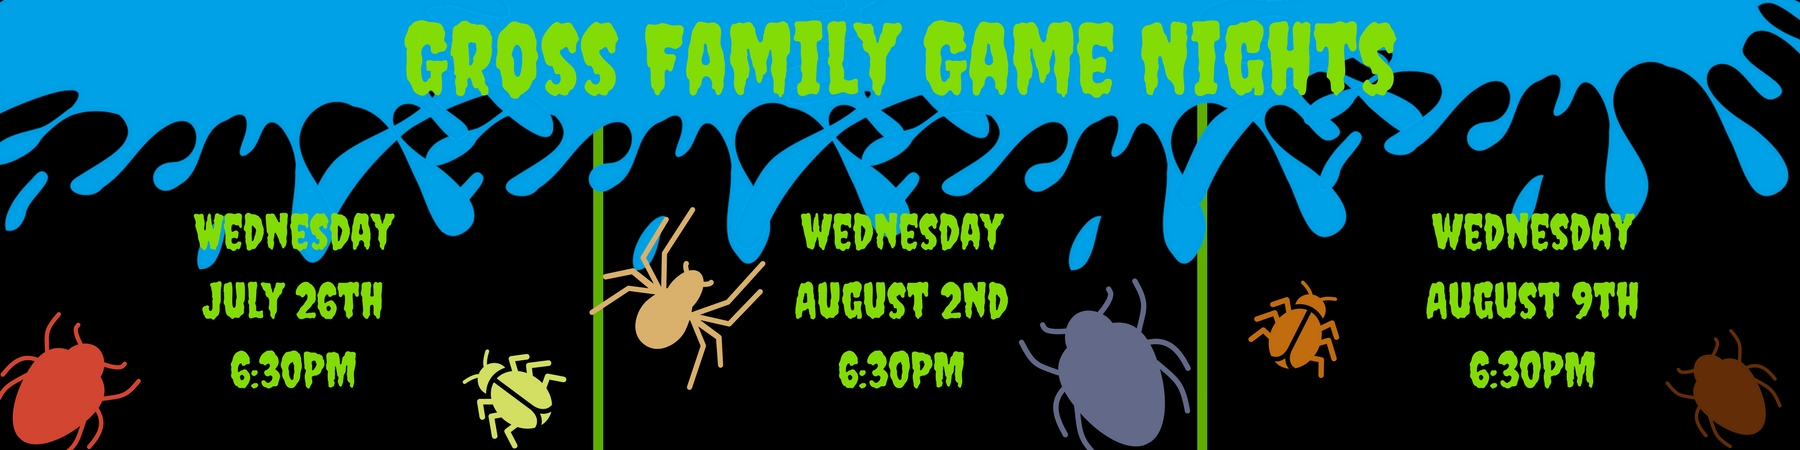 Gross-Family-Game-Nights